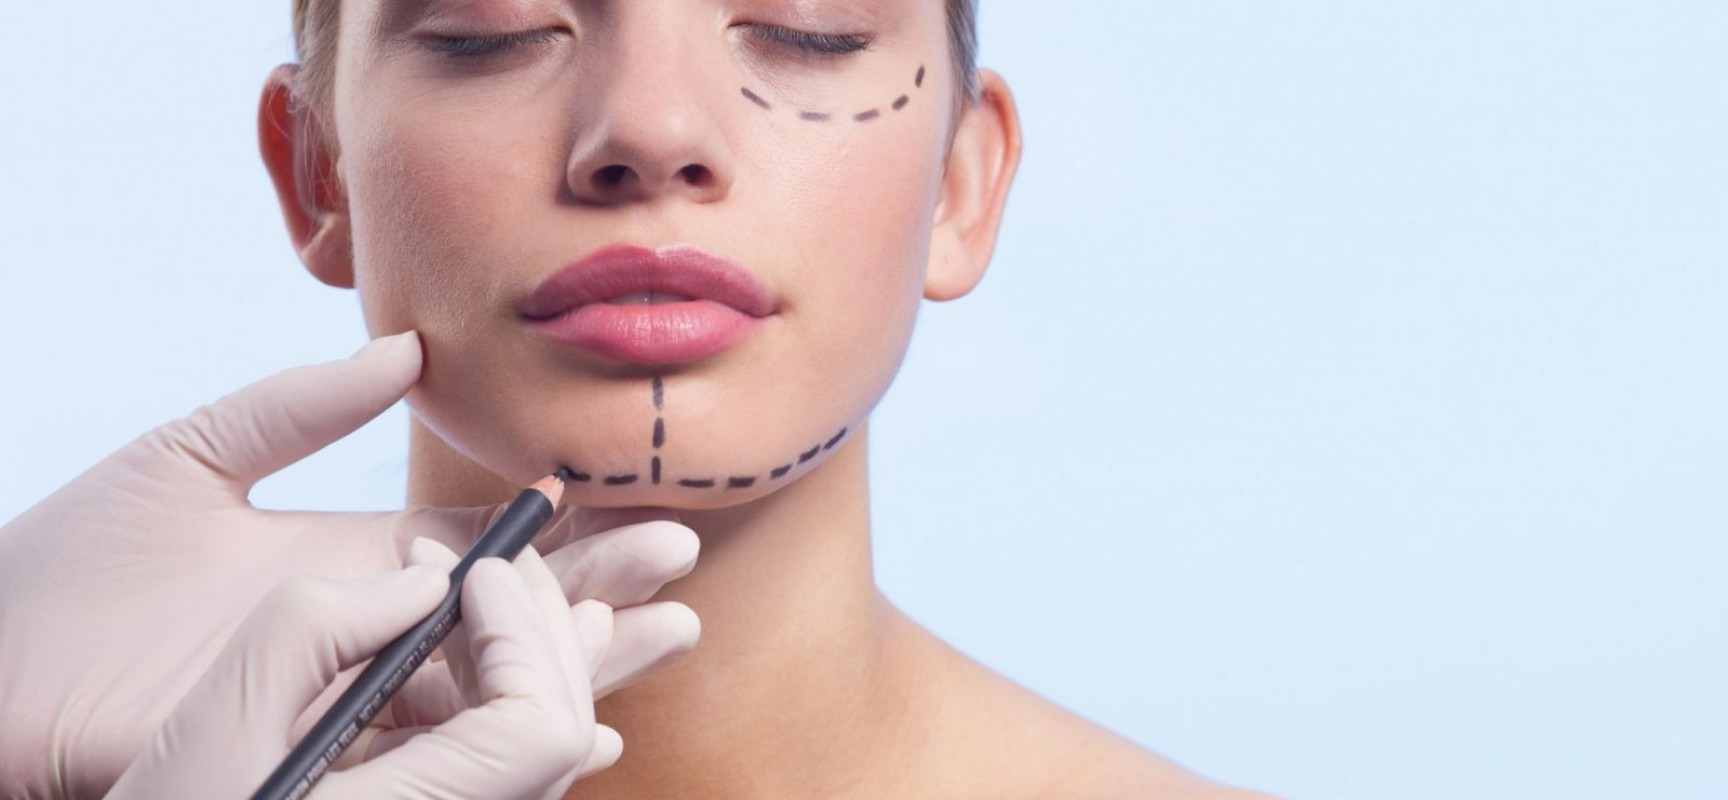 When is Plastic Surgery Necessary?